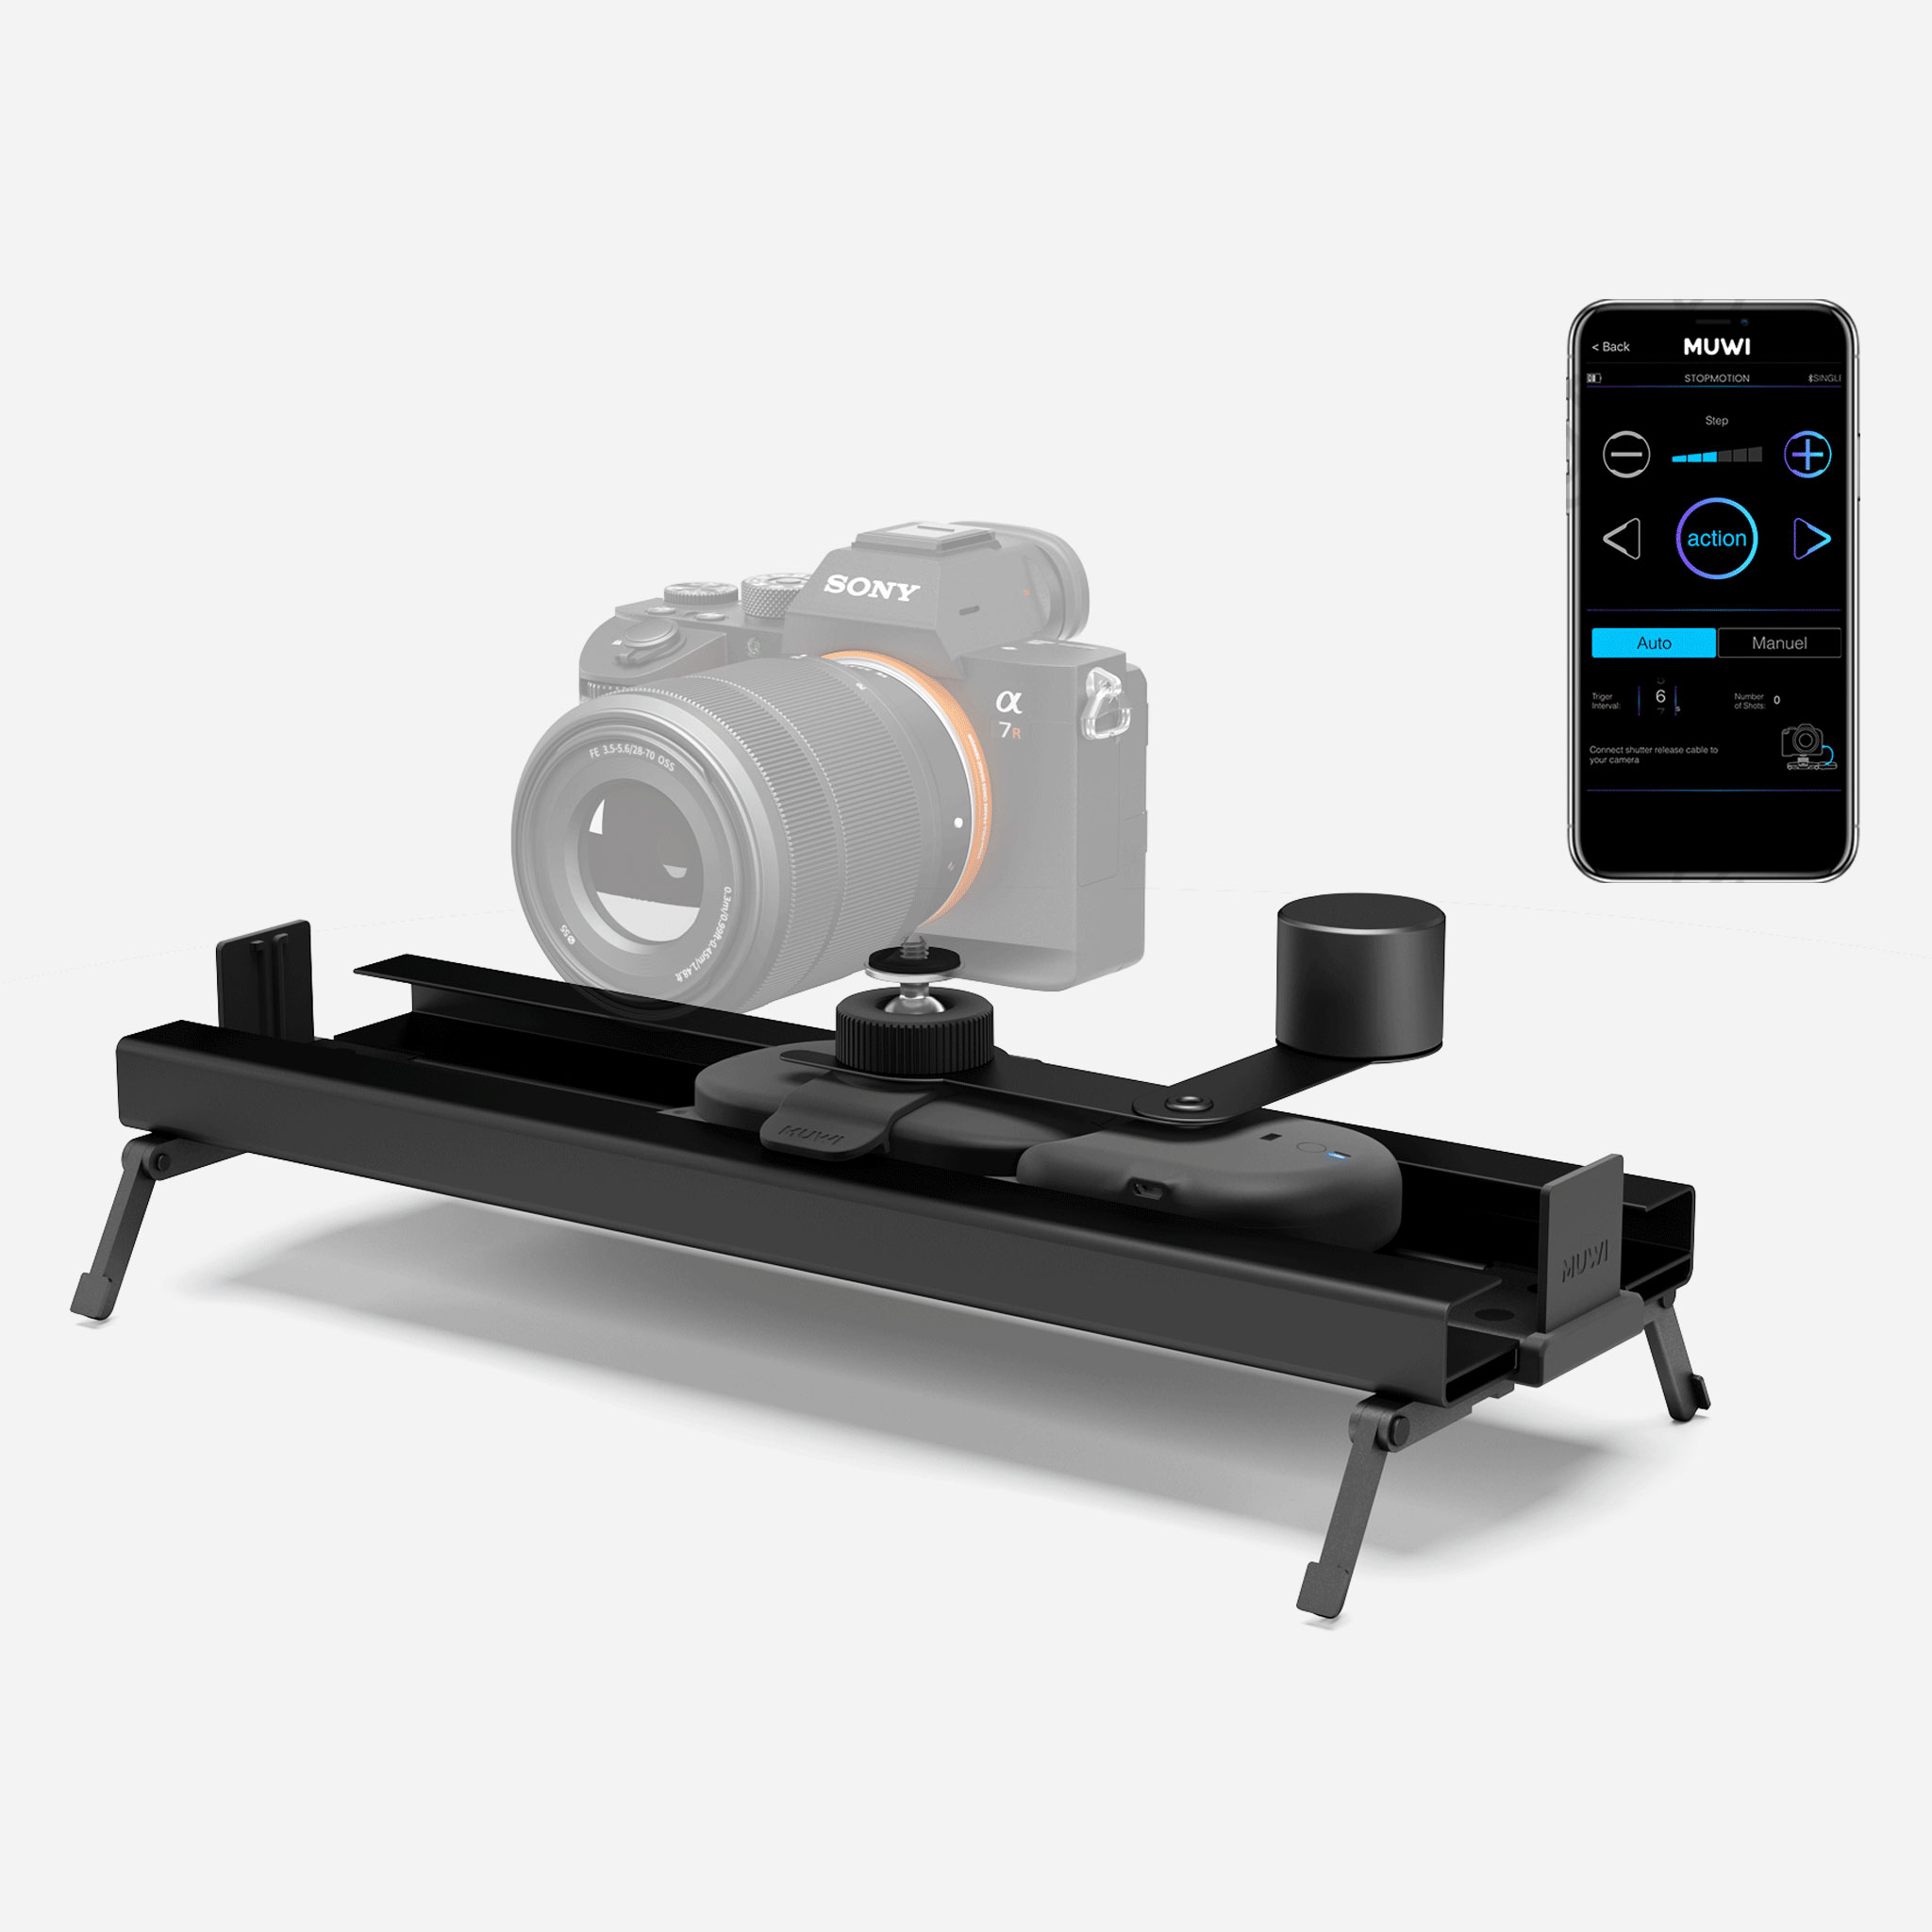 Full Pack Small converts your MUWI into a compact slider